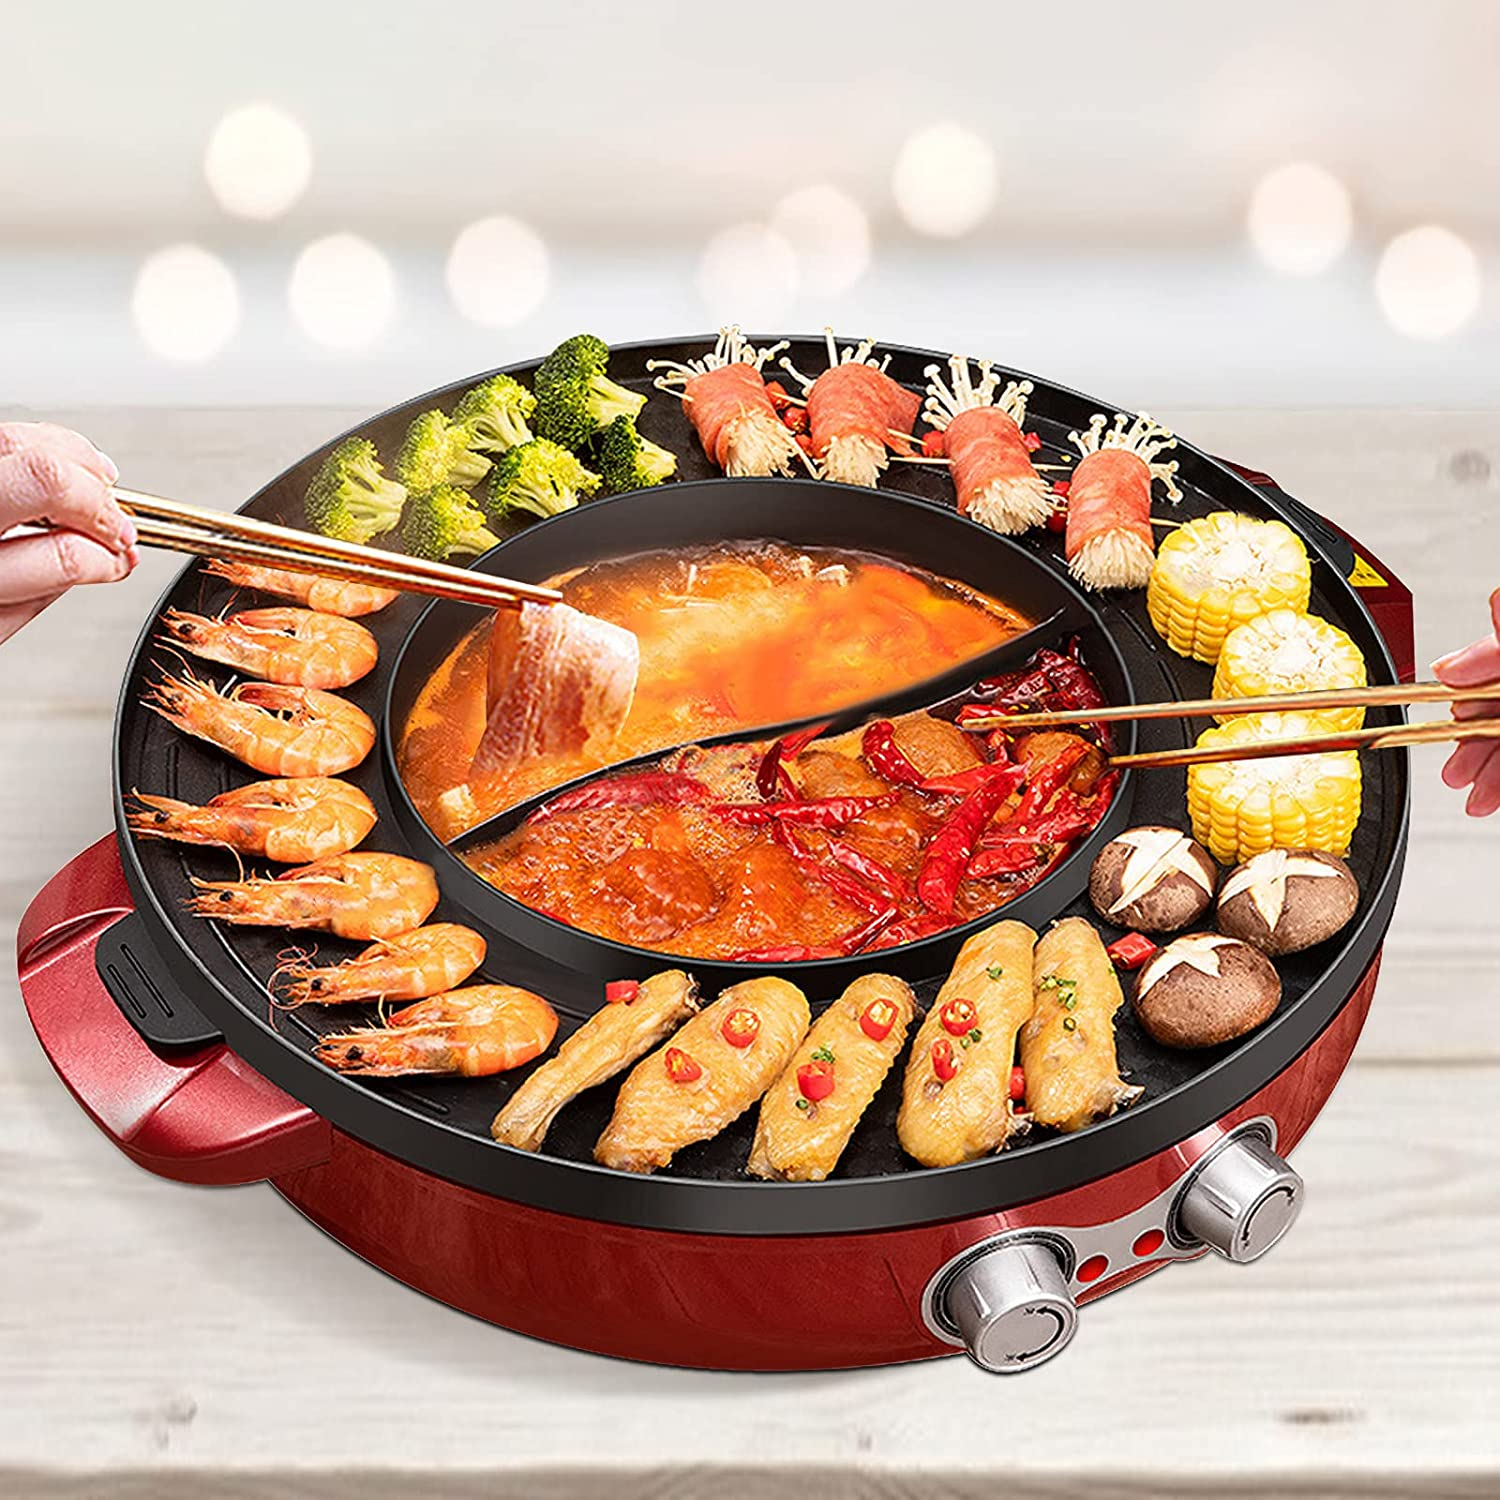 2 in 1 Electric Grill and All items free shipping Pot Removable 2200W Max 57% OFF With Hot